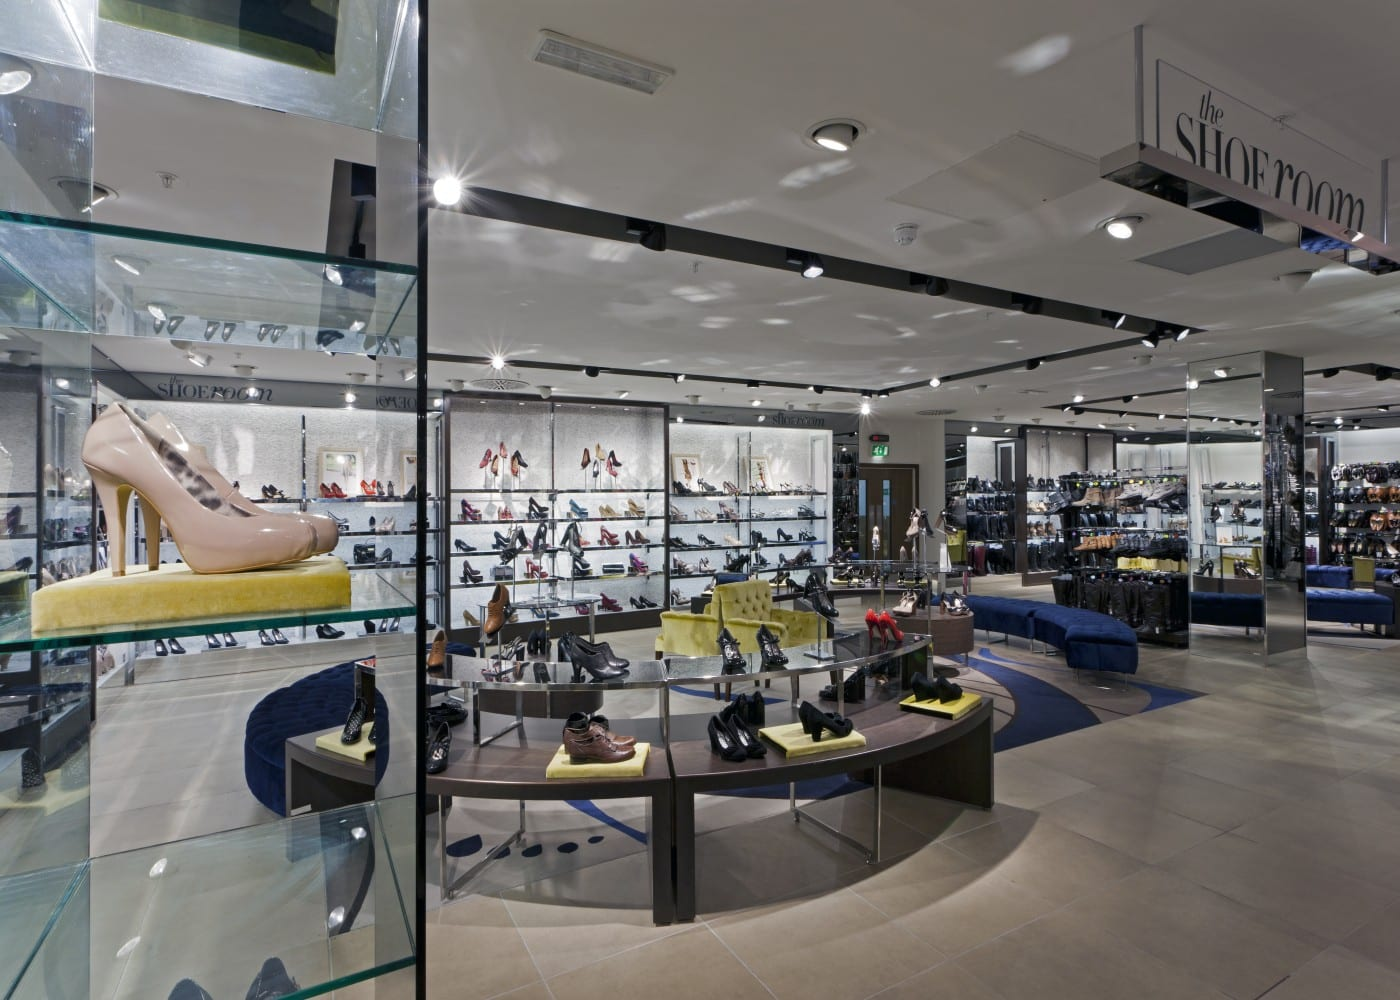 retail lighting design: Next shoe area